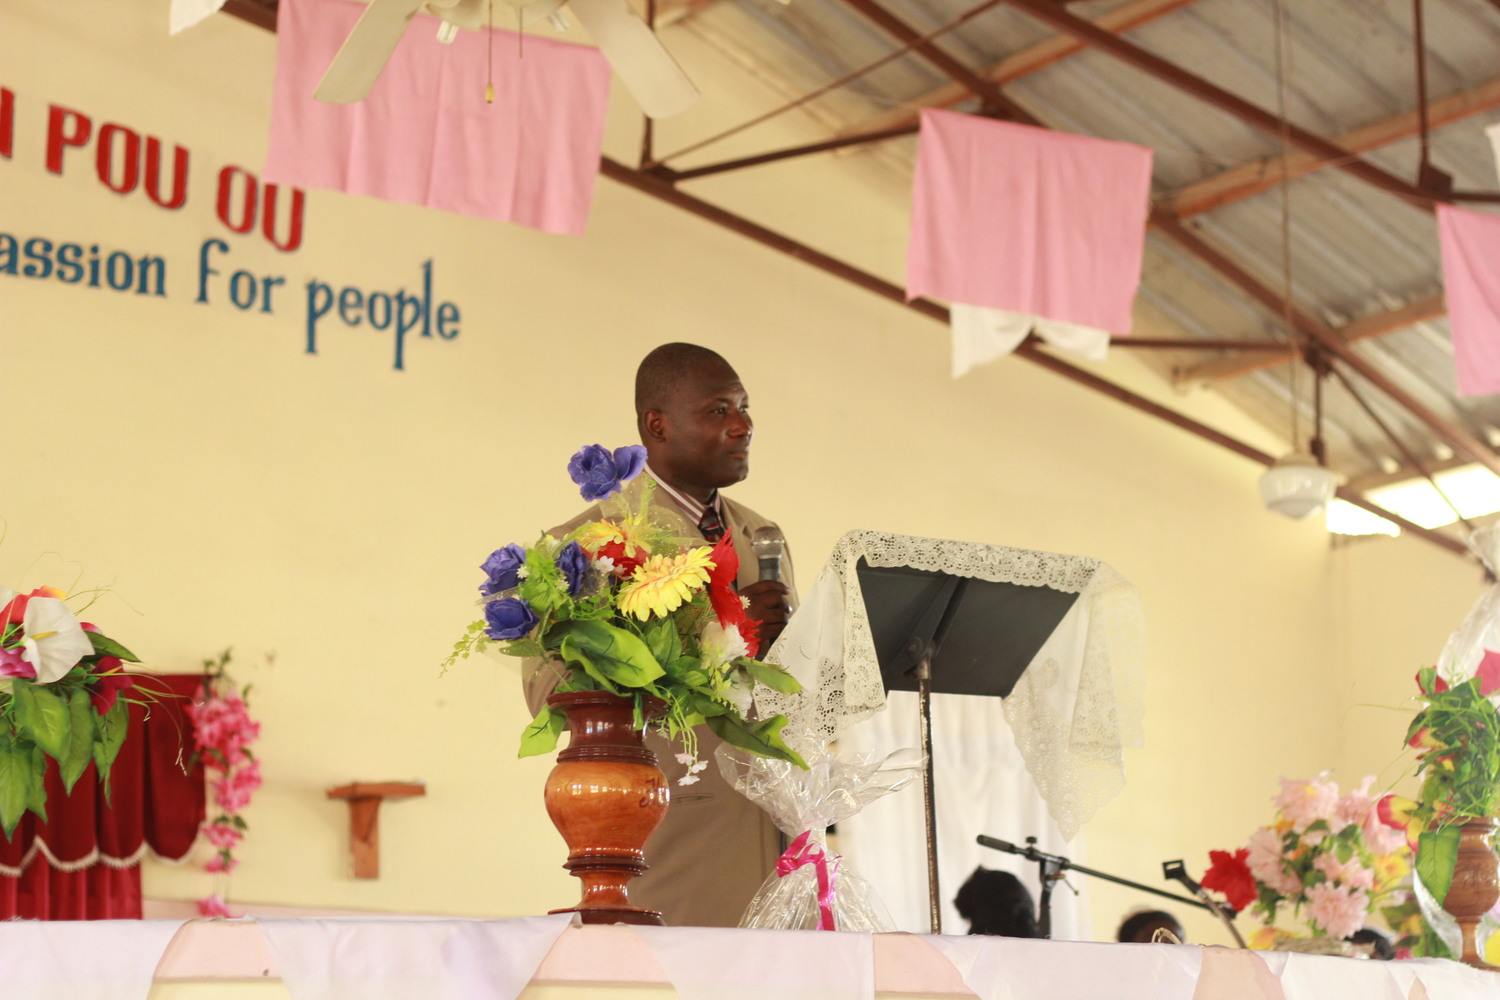 Pastor Julio Jn Gilles In Haiti displays an evident passion for God, and has compassion for people.